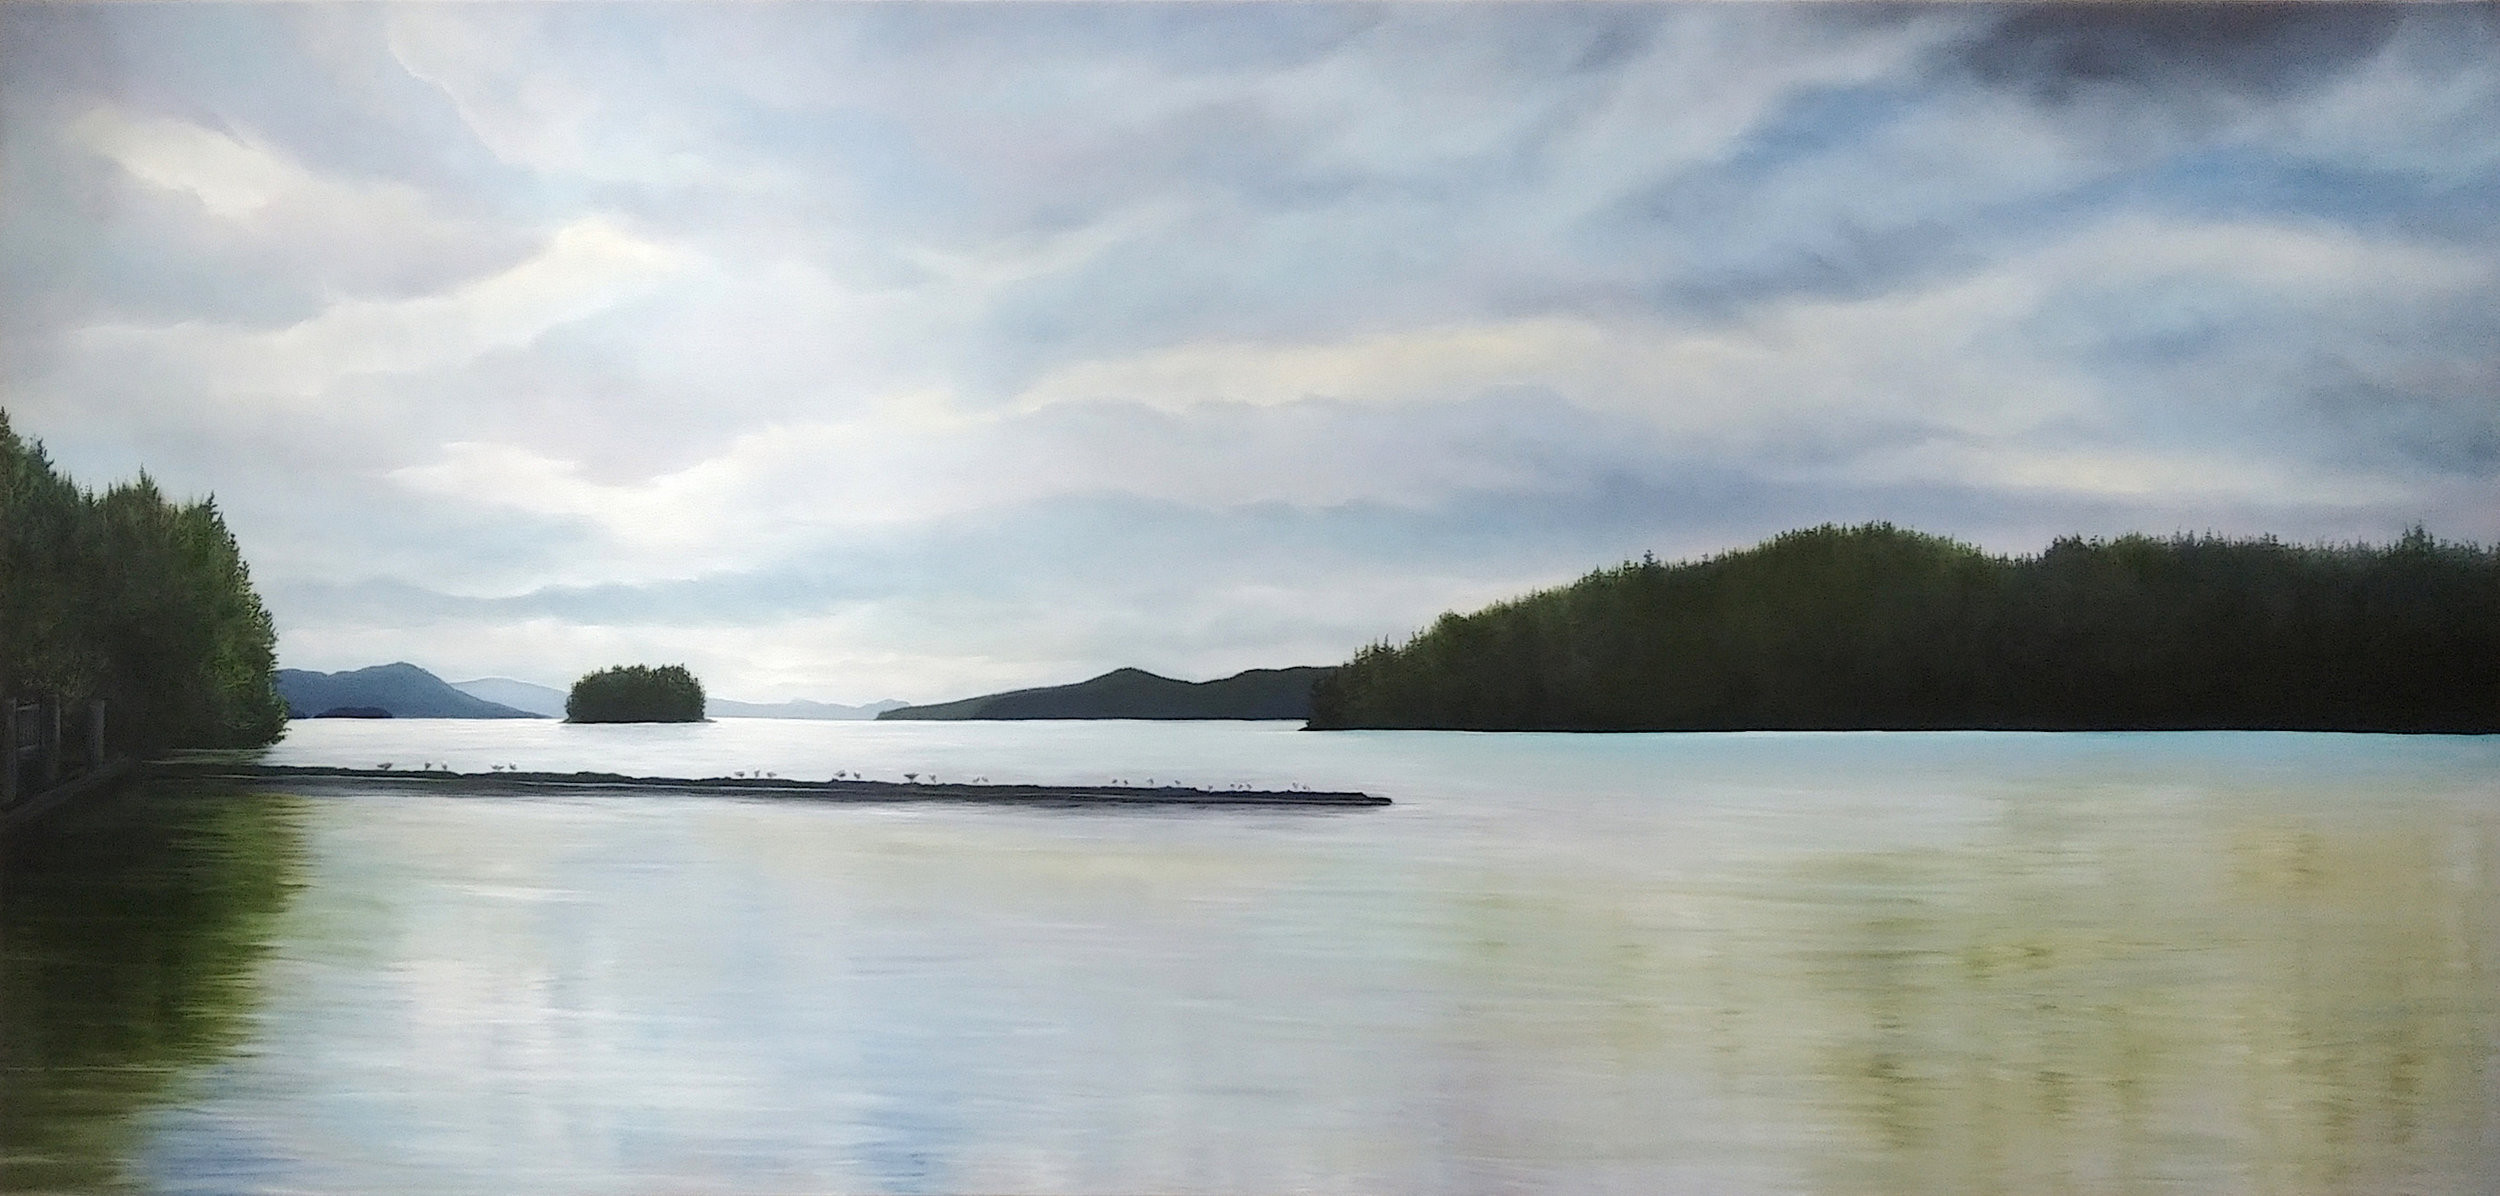 View From Good Hope Cannery  40 x 84  Oil on Canvas  SOLD